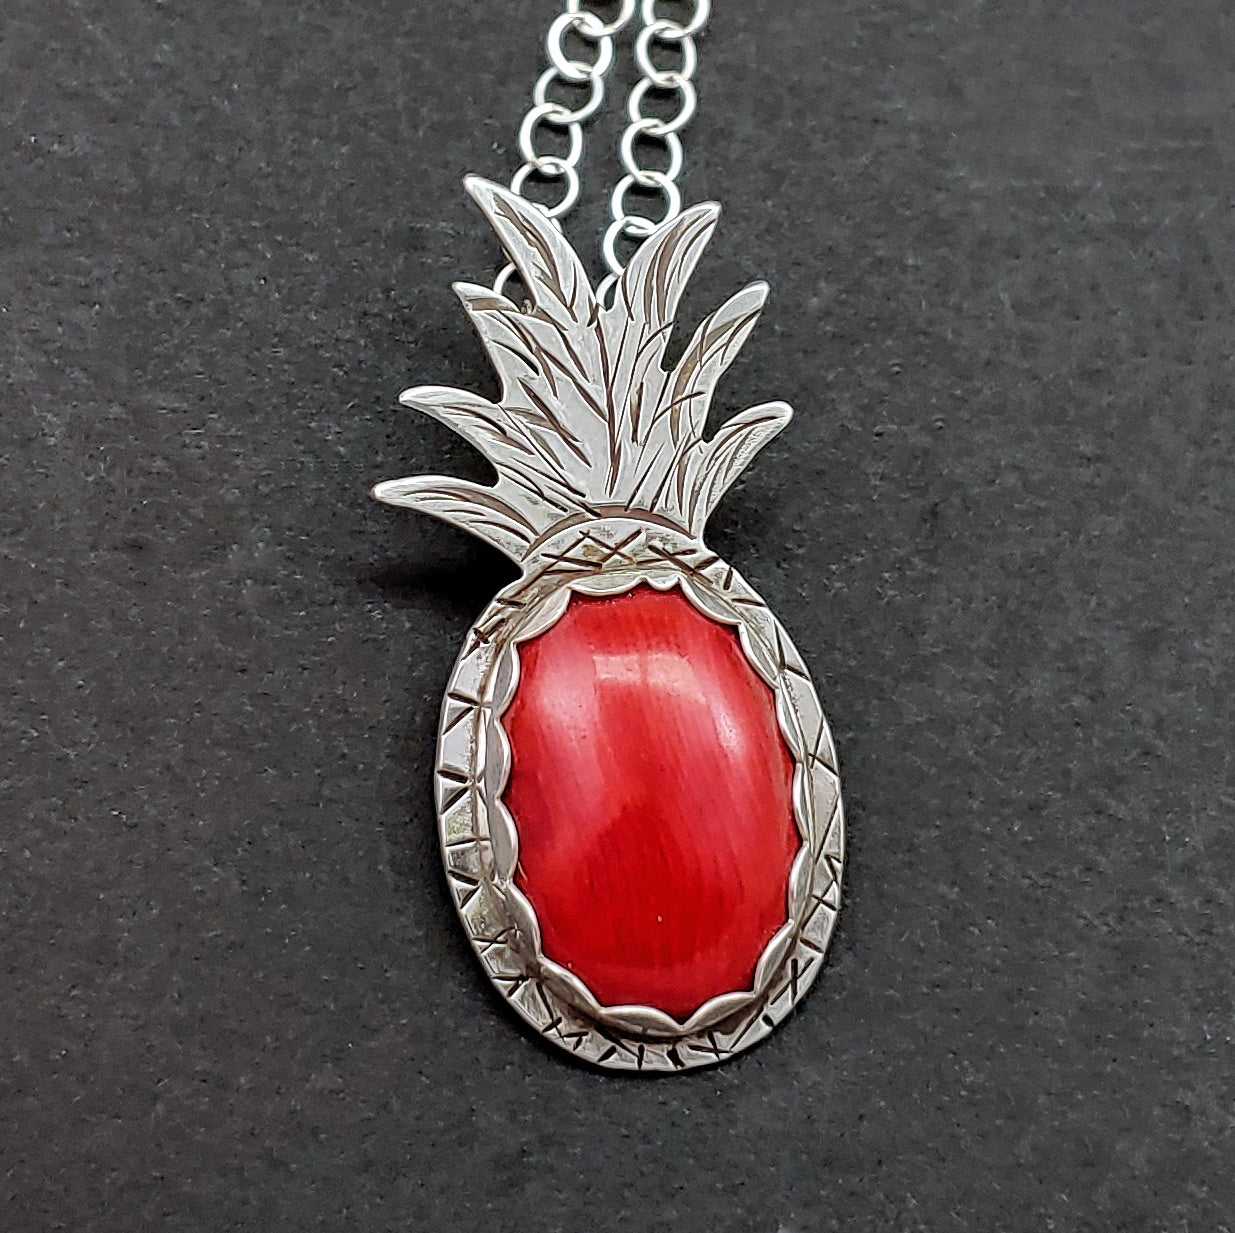 Pineapple Necklace with Red Coral